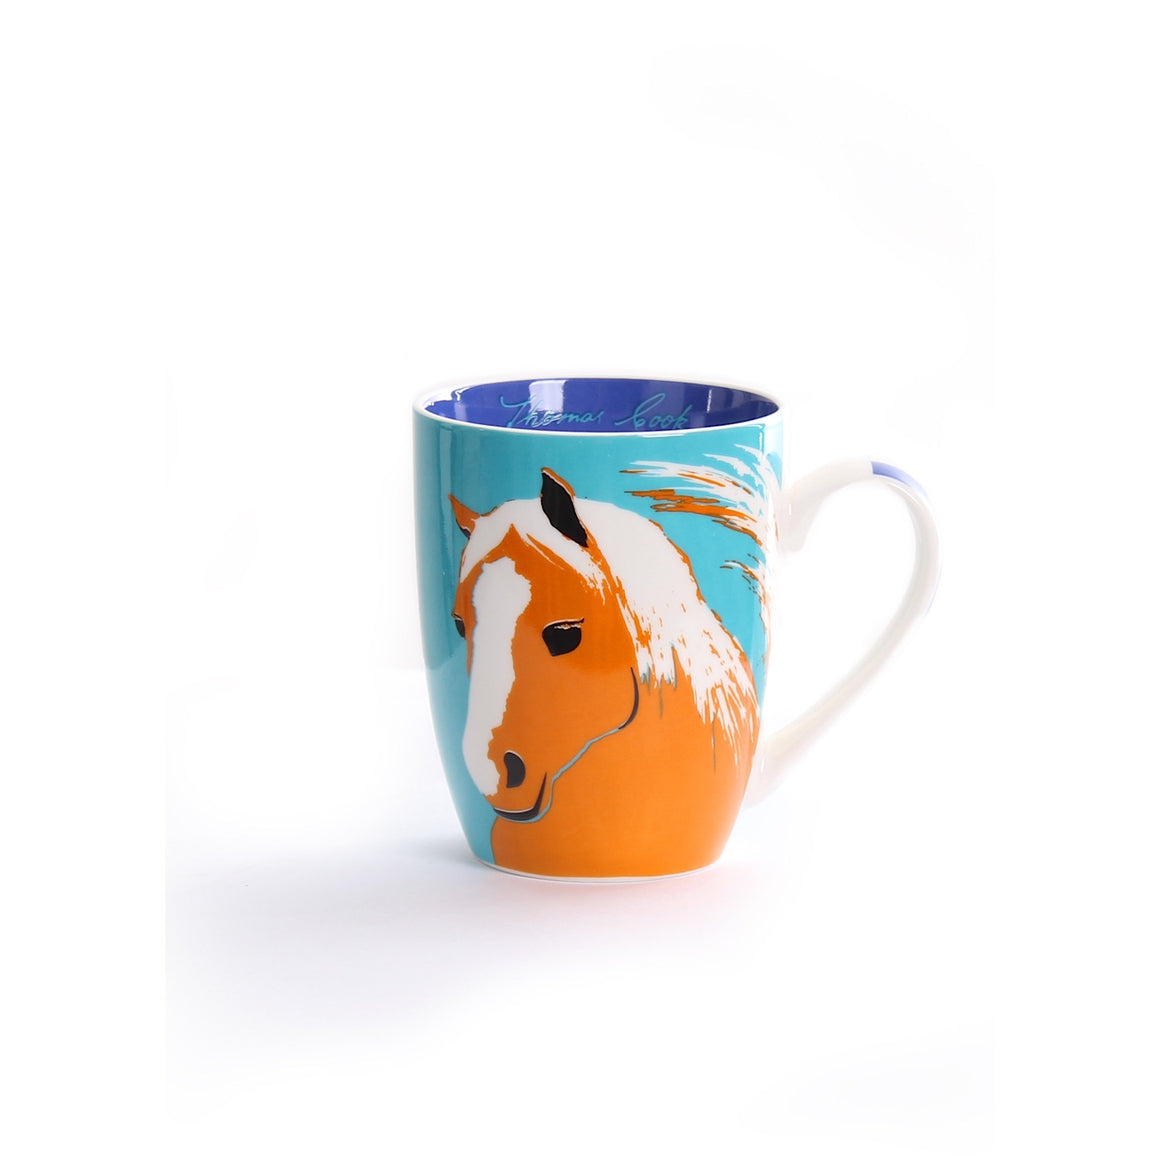 Thomas Cook Farm Mug Horse TCP2924MUG